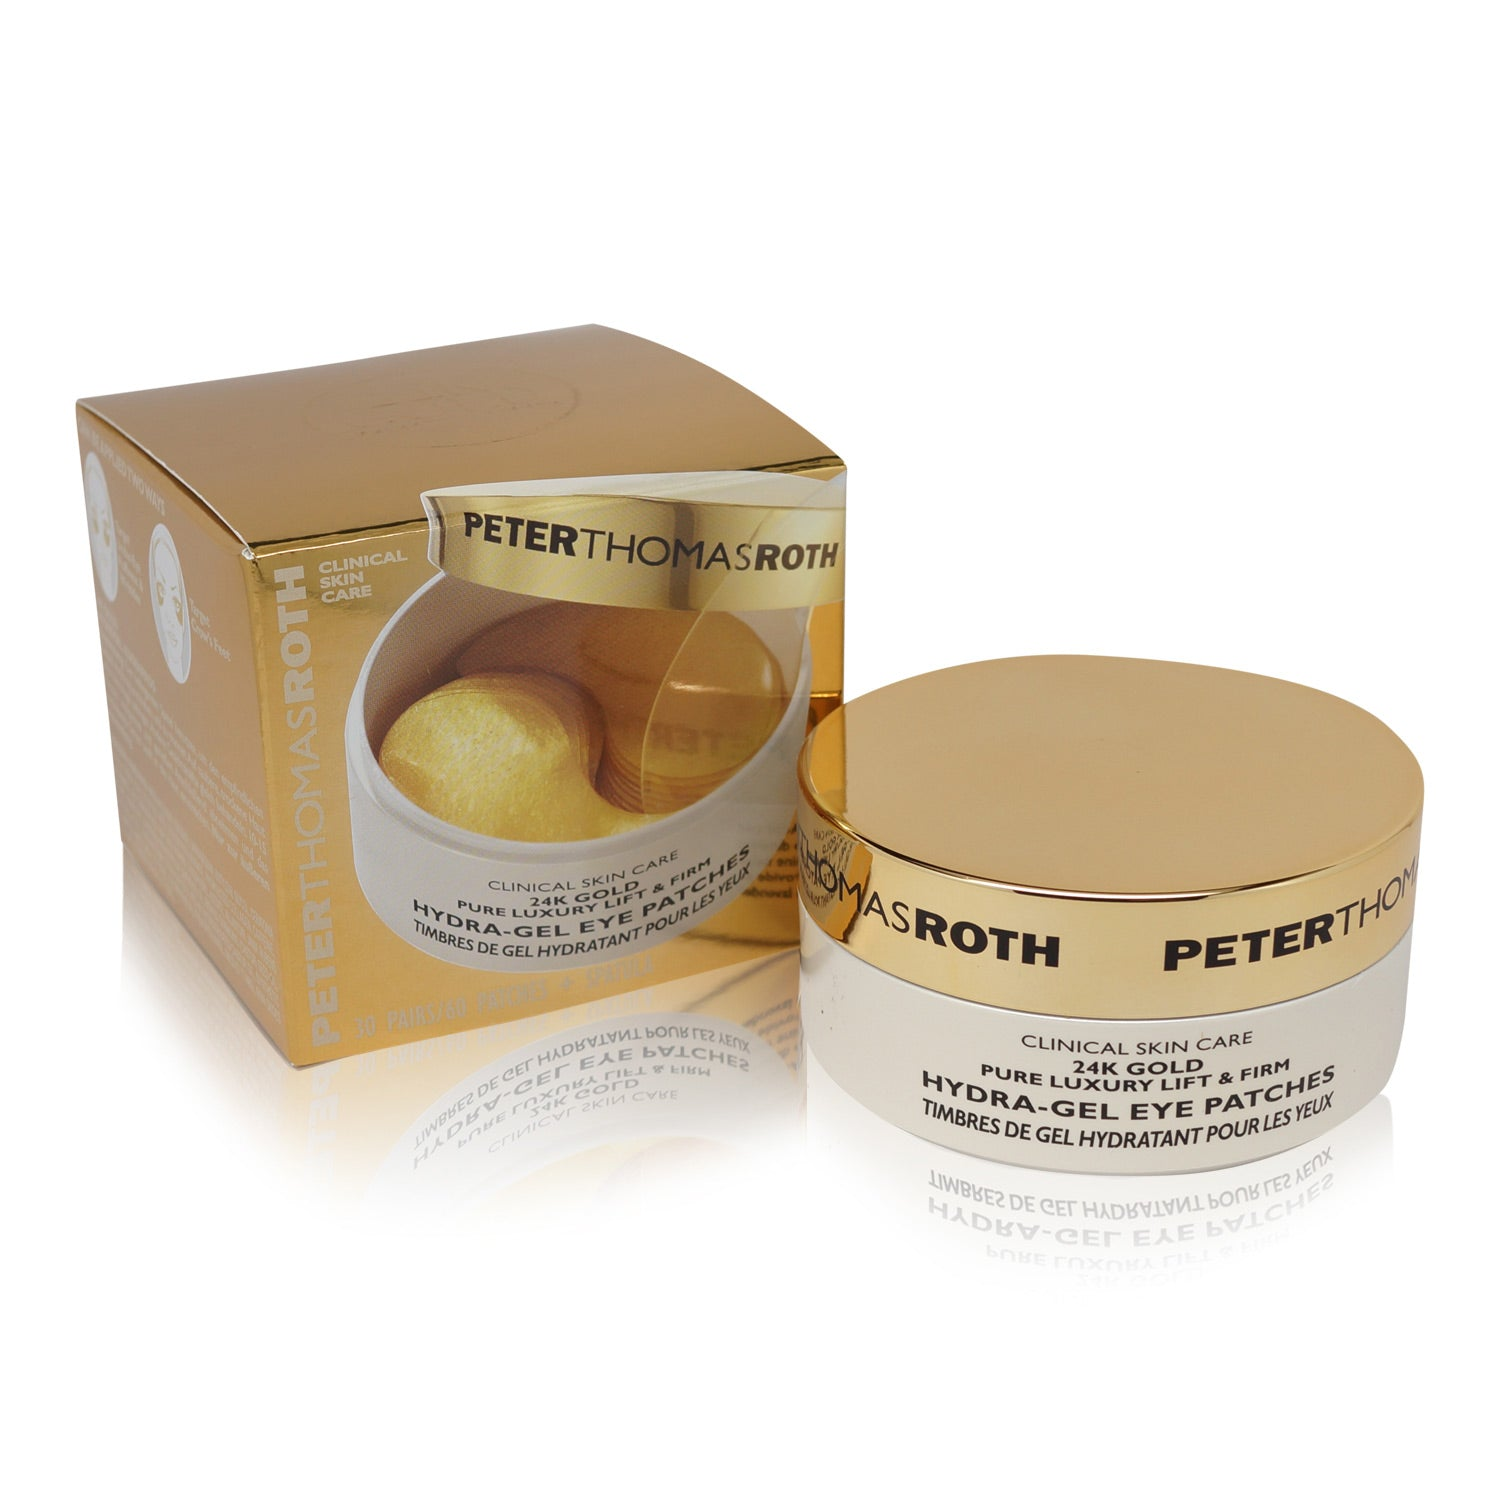 PETER THOMAS ROTH ~ 24K GOLD HYDRA-GEL EYE PATCHES ~ 60CT *2018*